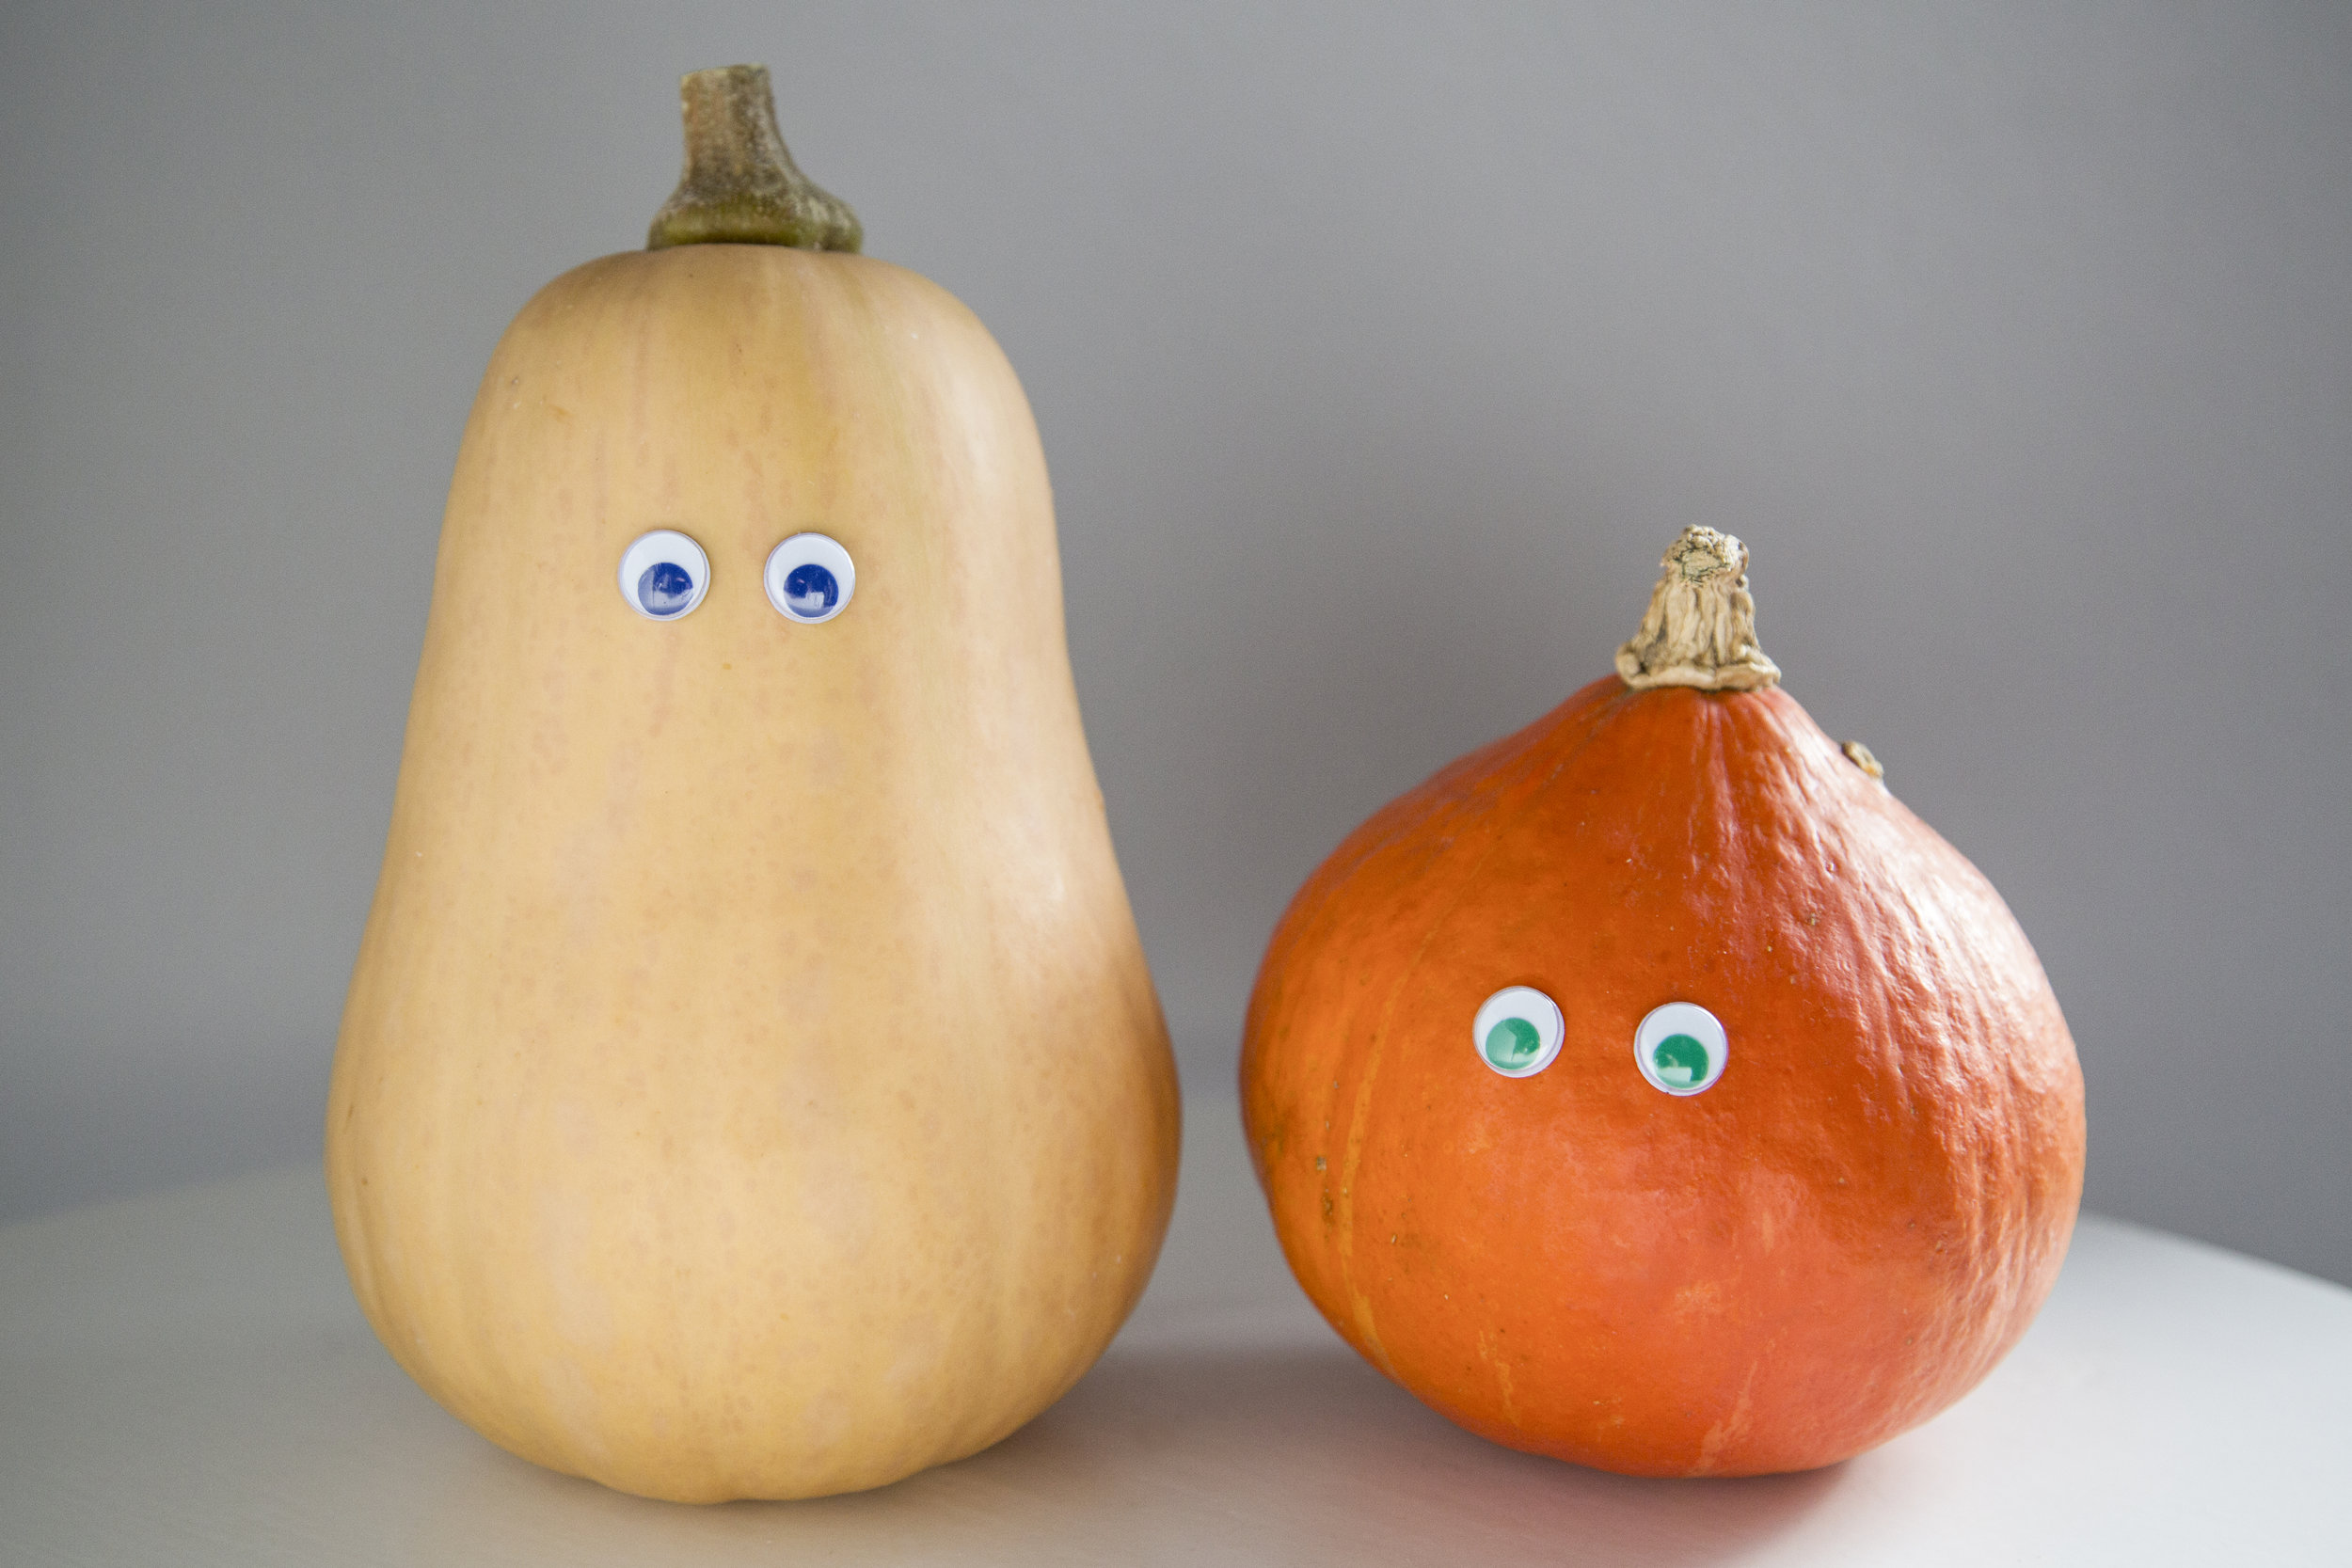 http://www.gettyimages.de/detail/foto/pumpkin-with-eyes-lizenzfreies-bild/523212426